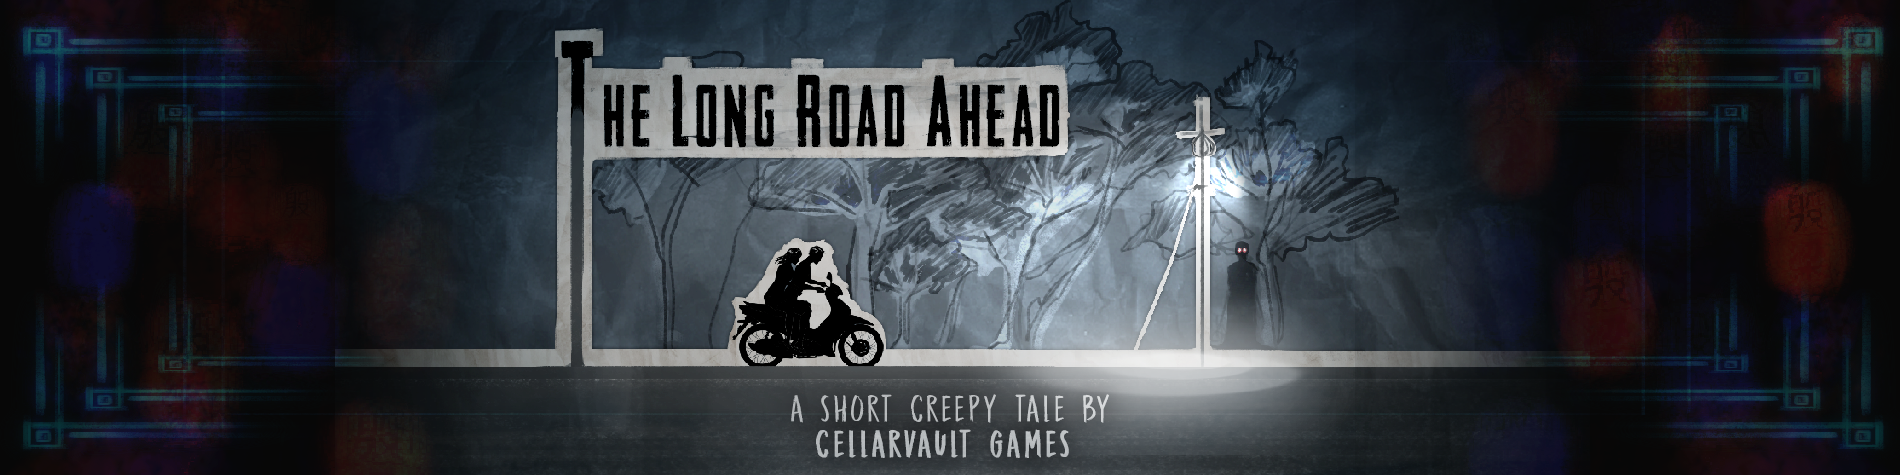 Short Creepy Tales: The Long Road Ahead